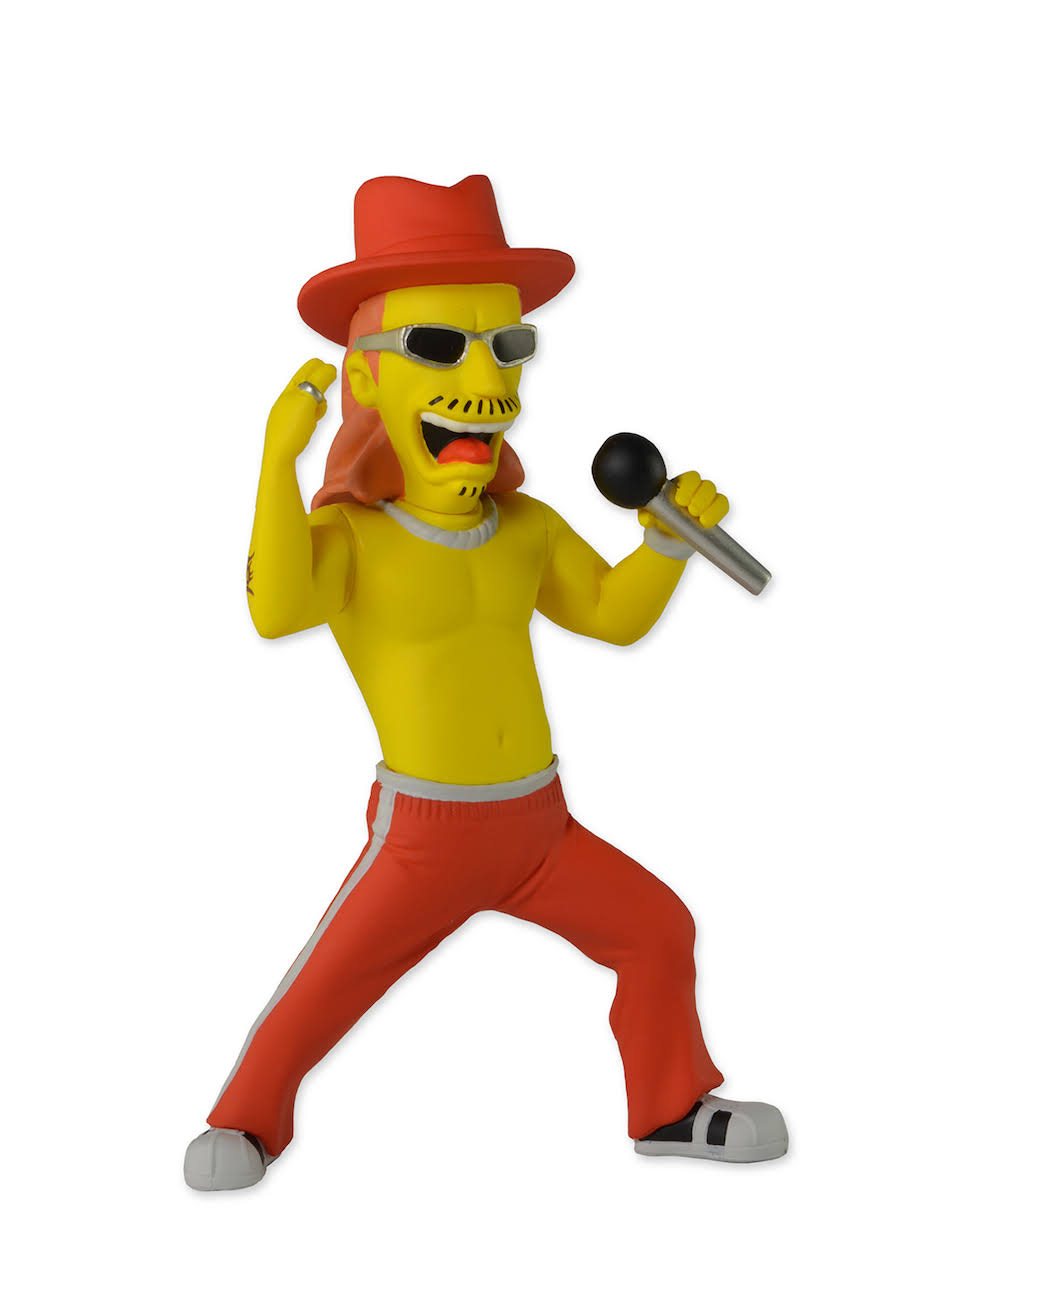 NECA The Simpsons 25th Anniversary Series 1 Action Figure - Kid Rock, 5""